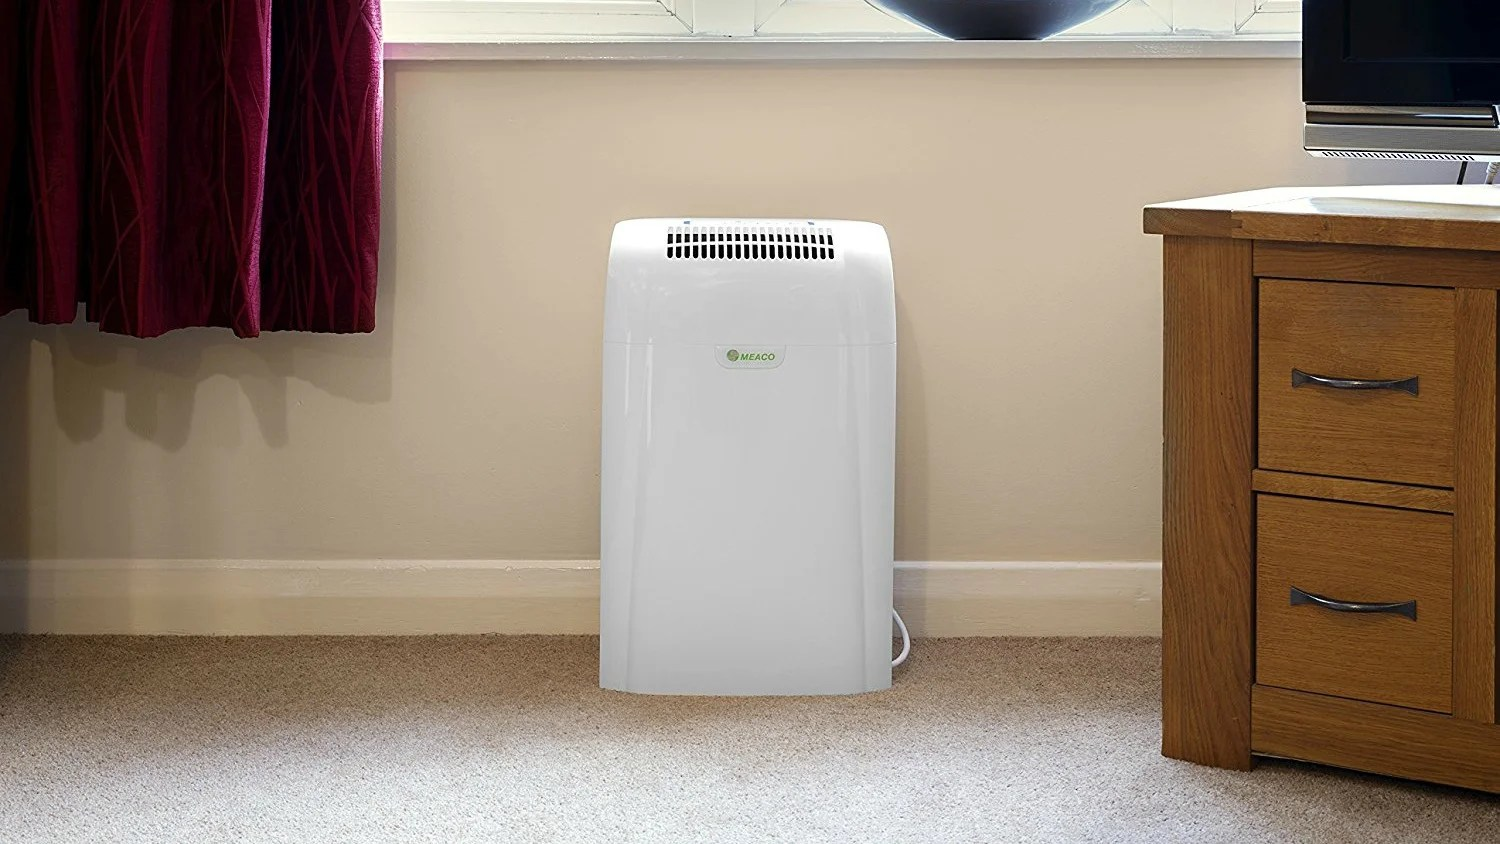 Best dehumidifiers The top dehumidifiers to buy for the home from 30  Expert Reviews